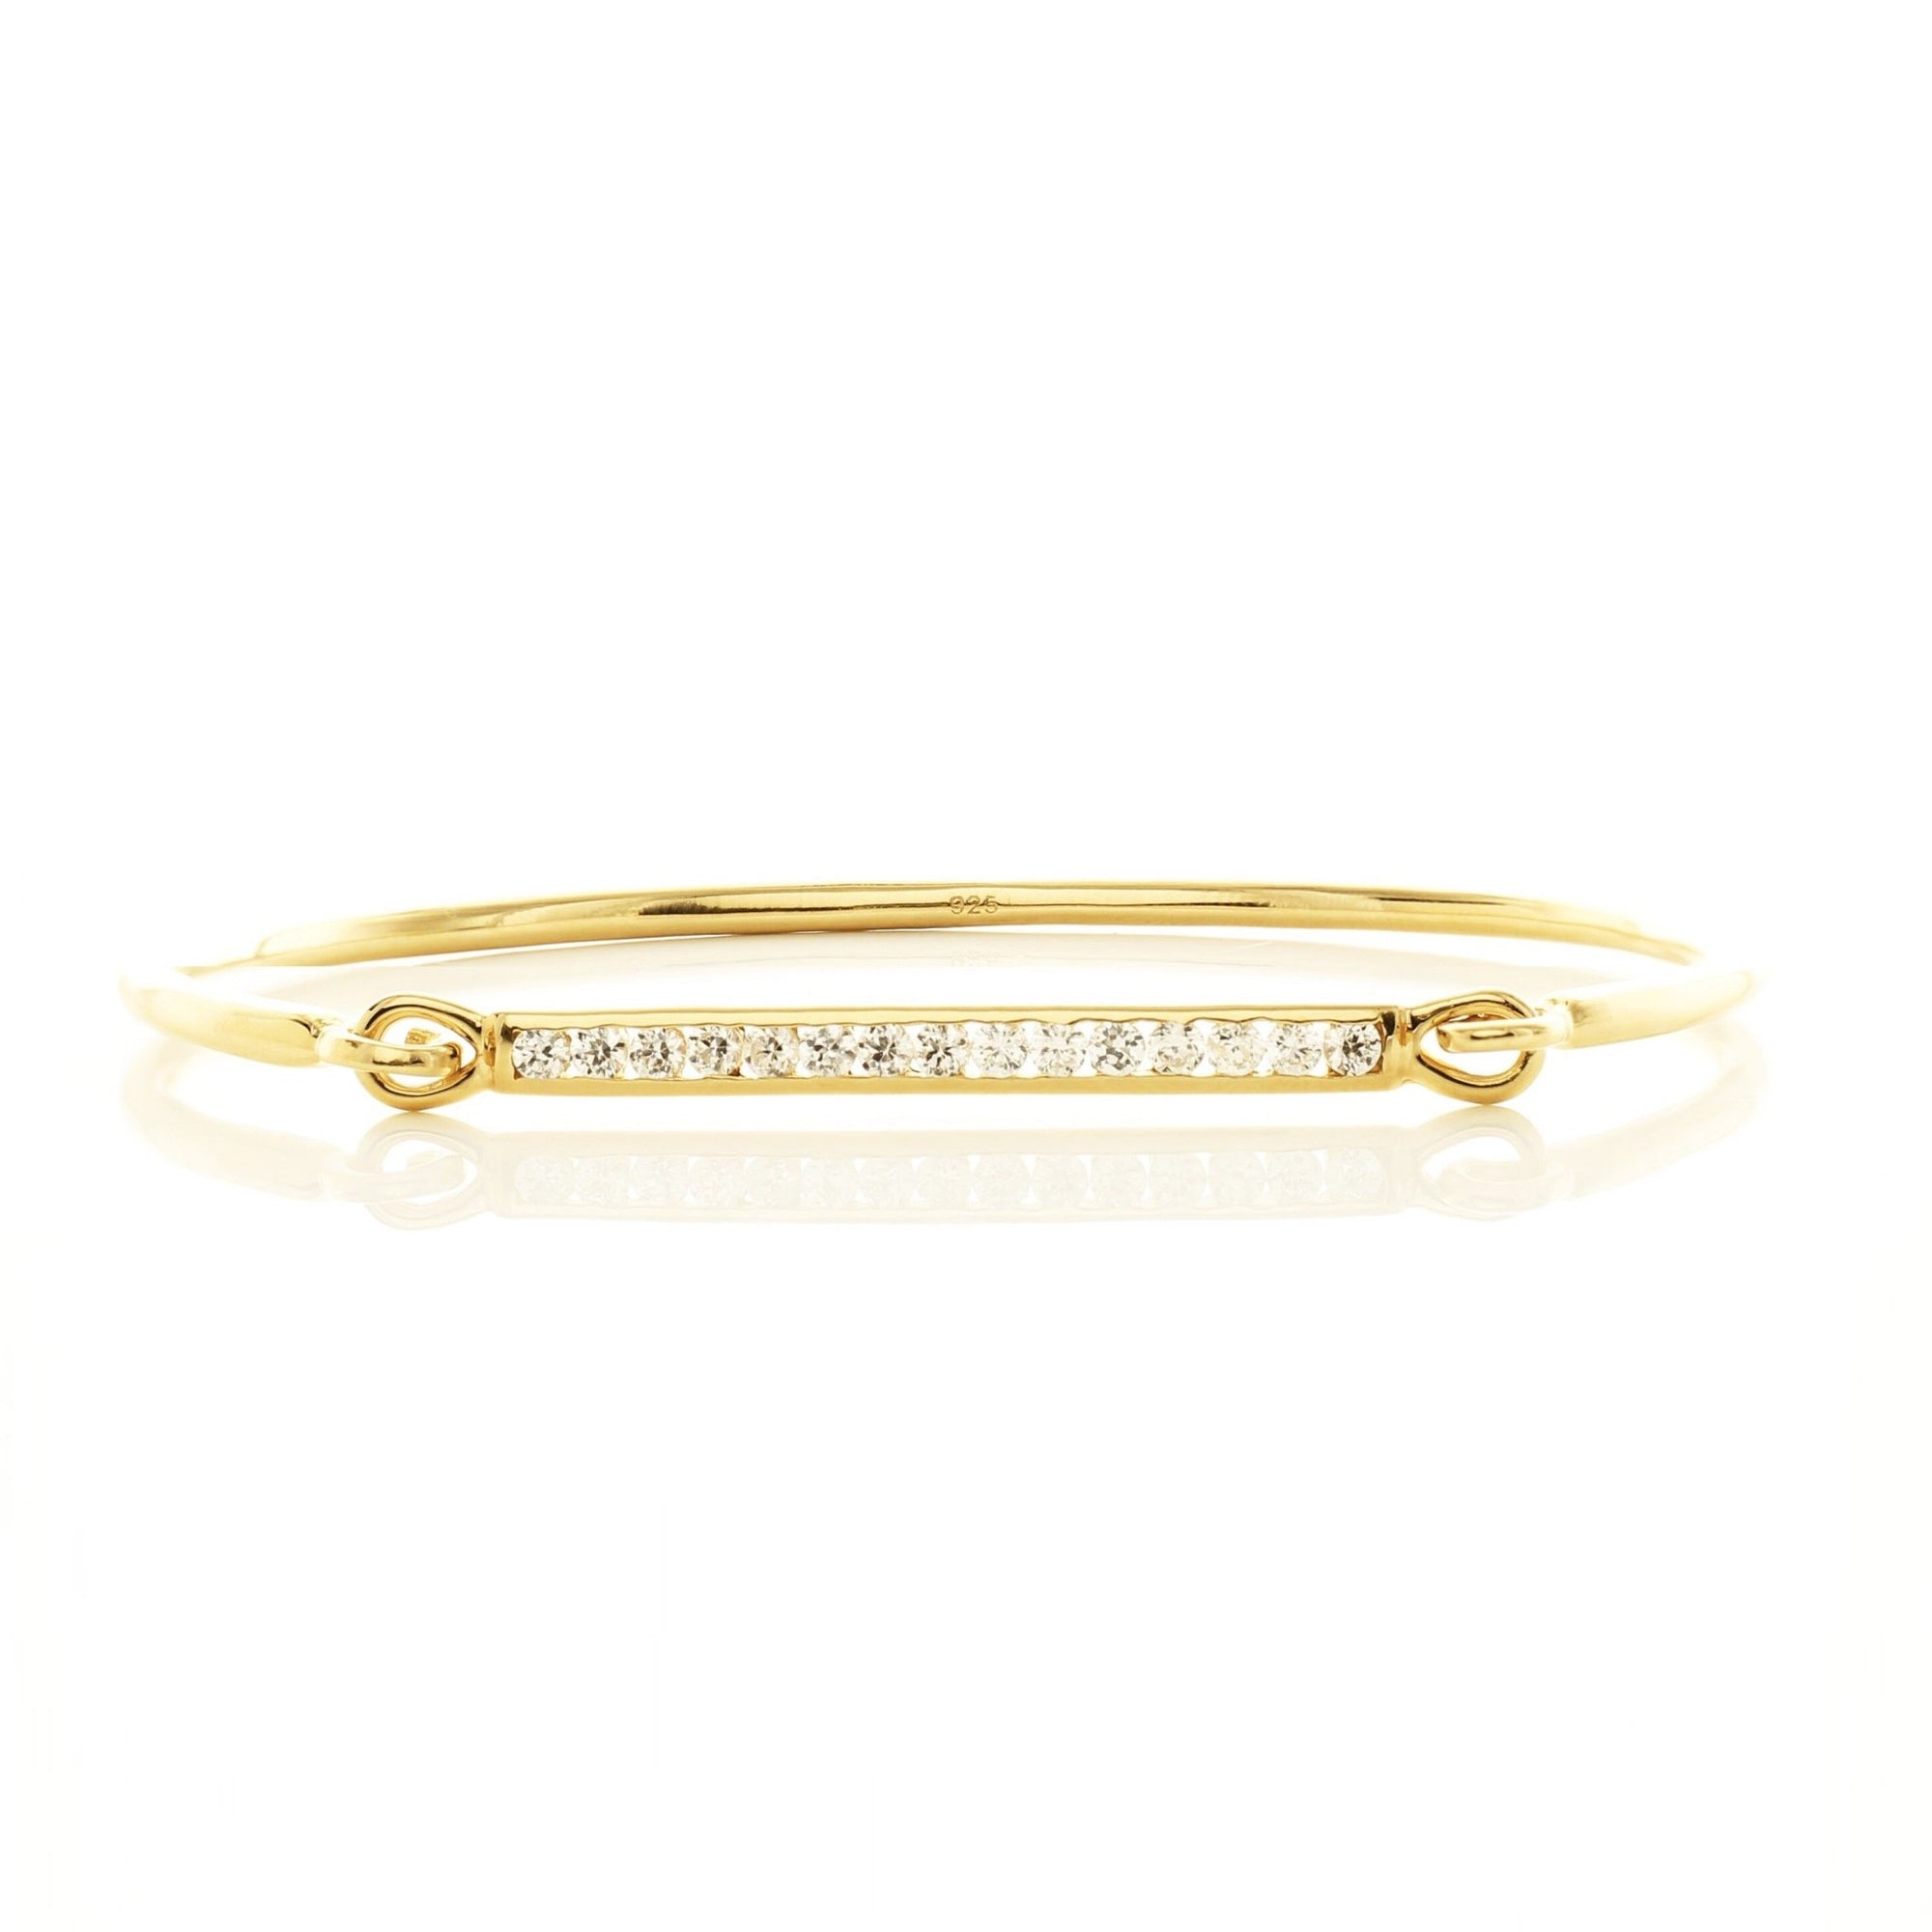 DREAM STARDUST CUFF - CUBIC ZIRCONIA & GOLD - SO PRETTY CARA COTTER